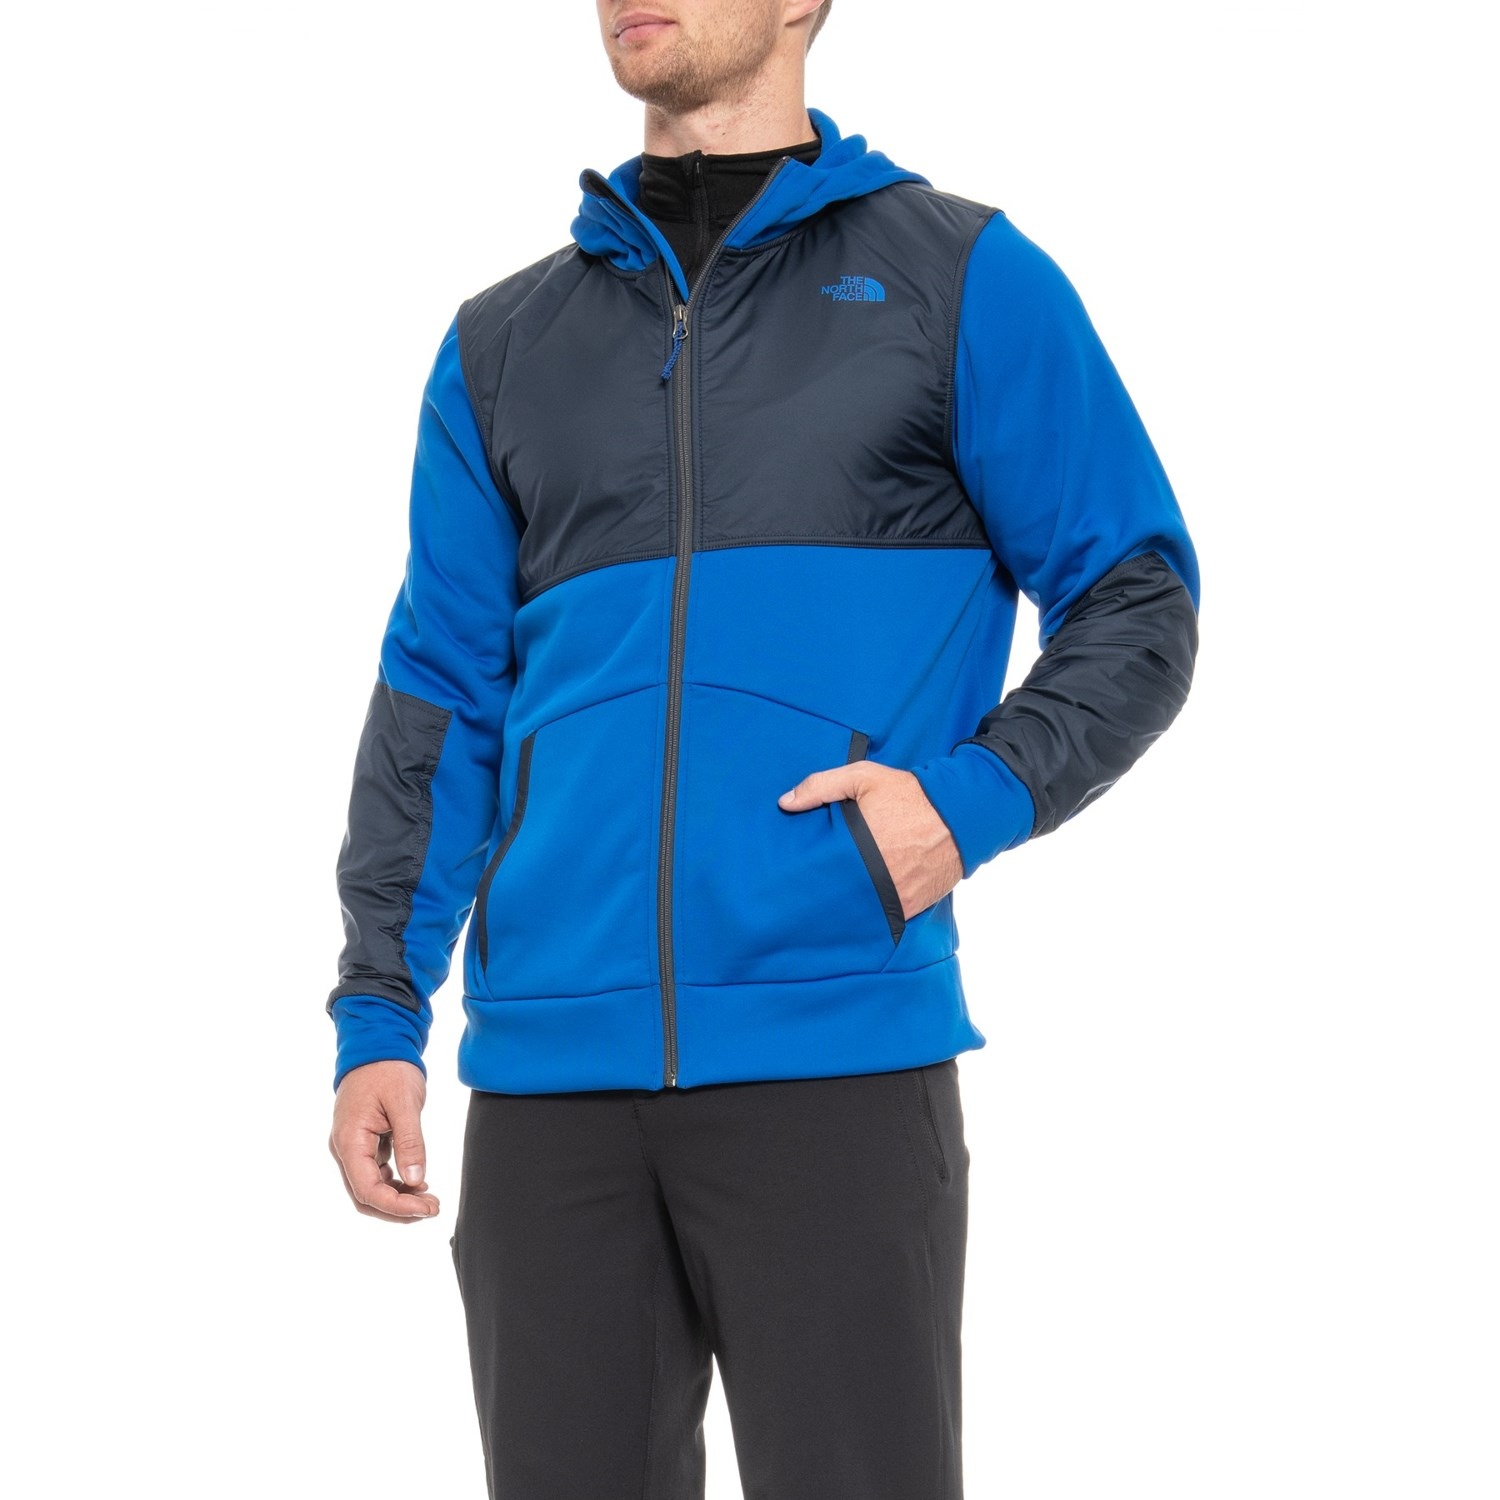 0be092db973 ... clearance the north face climb on full zip hoodie for men in urban navy  0bf01 8b834 ...